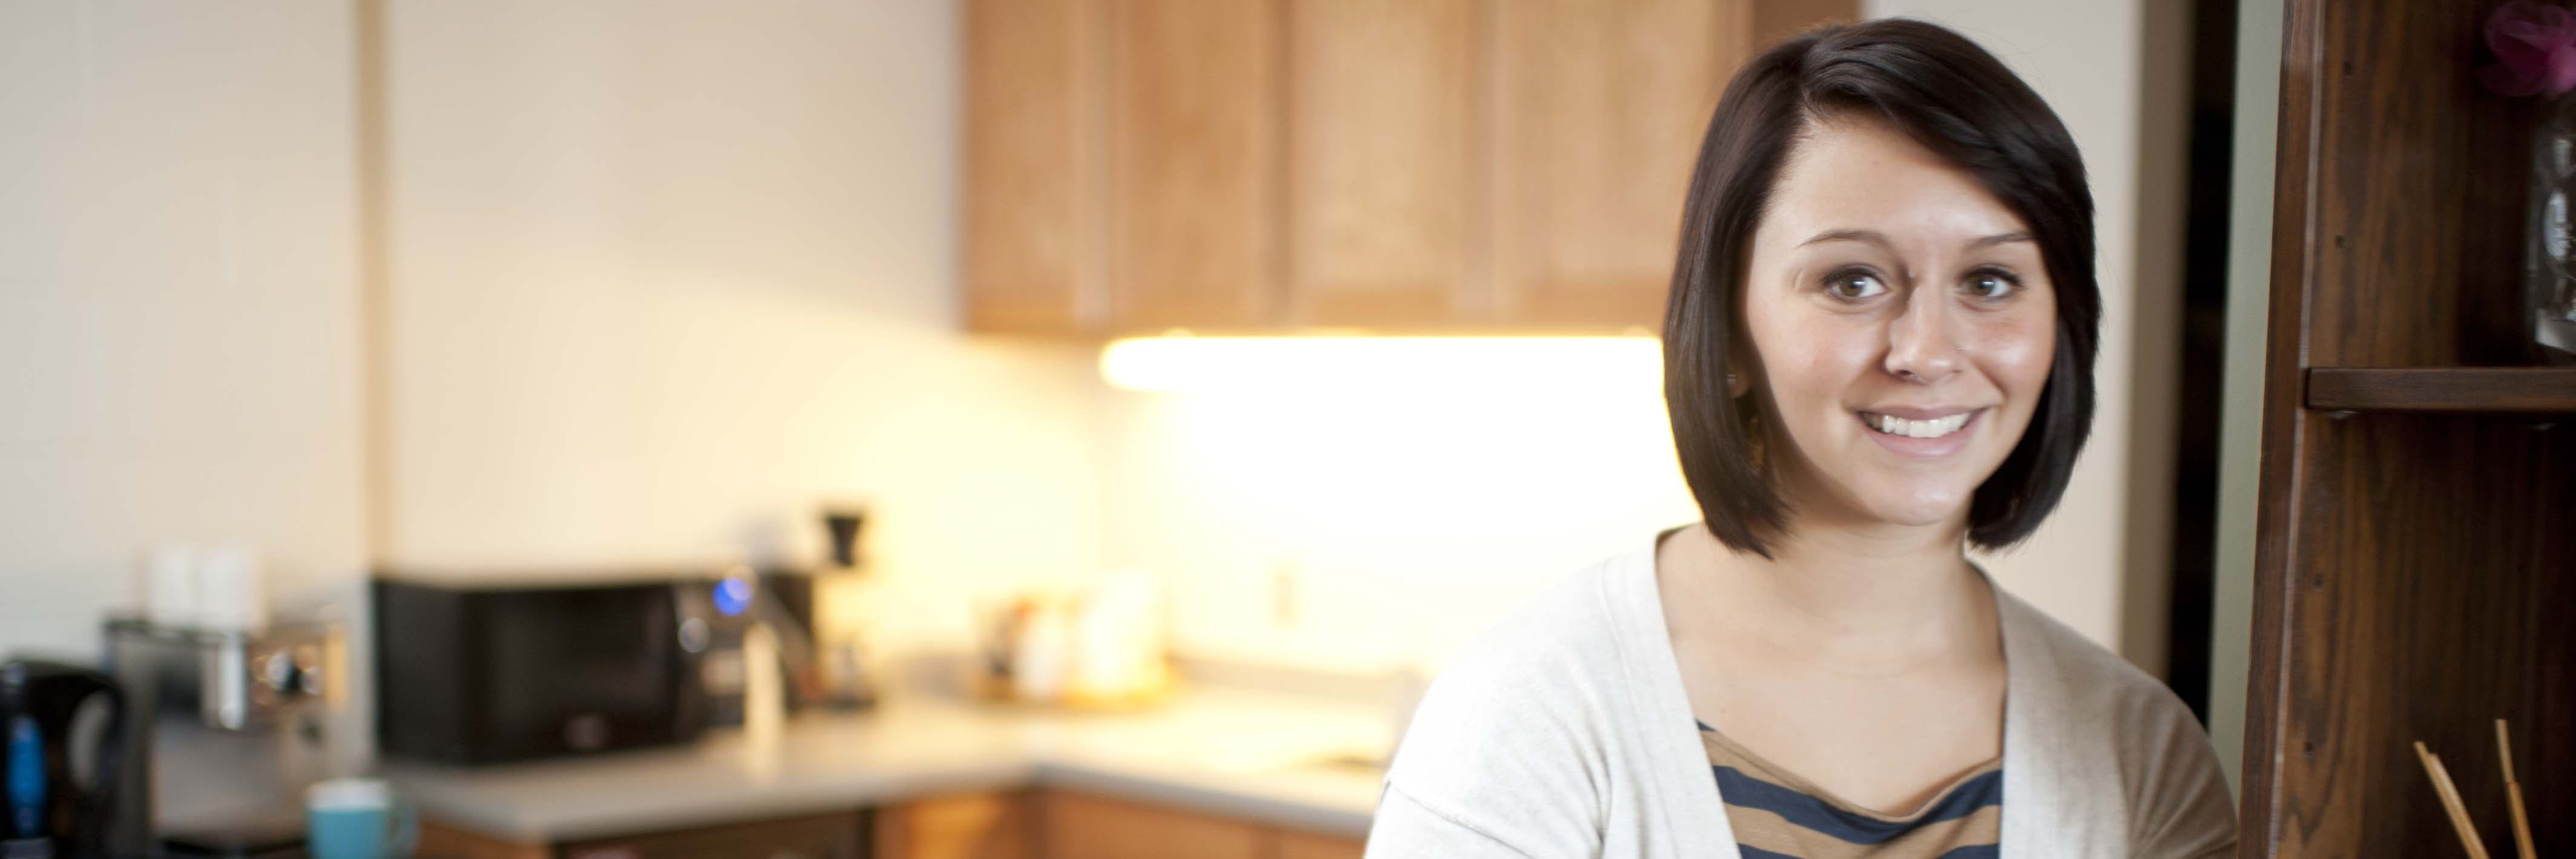 A student stands in a residence hall kitchen.